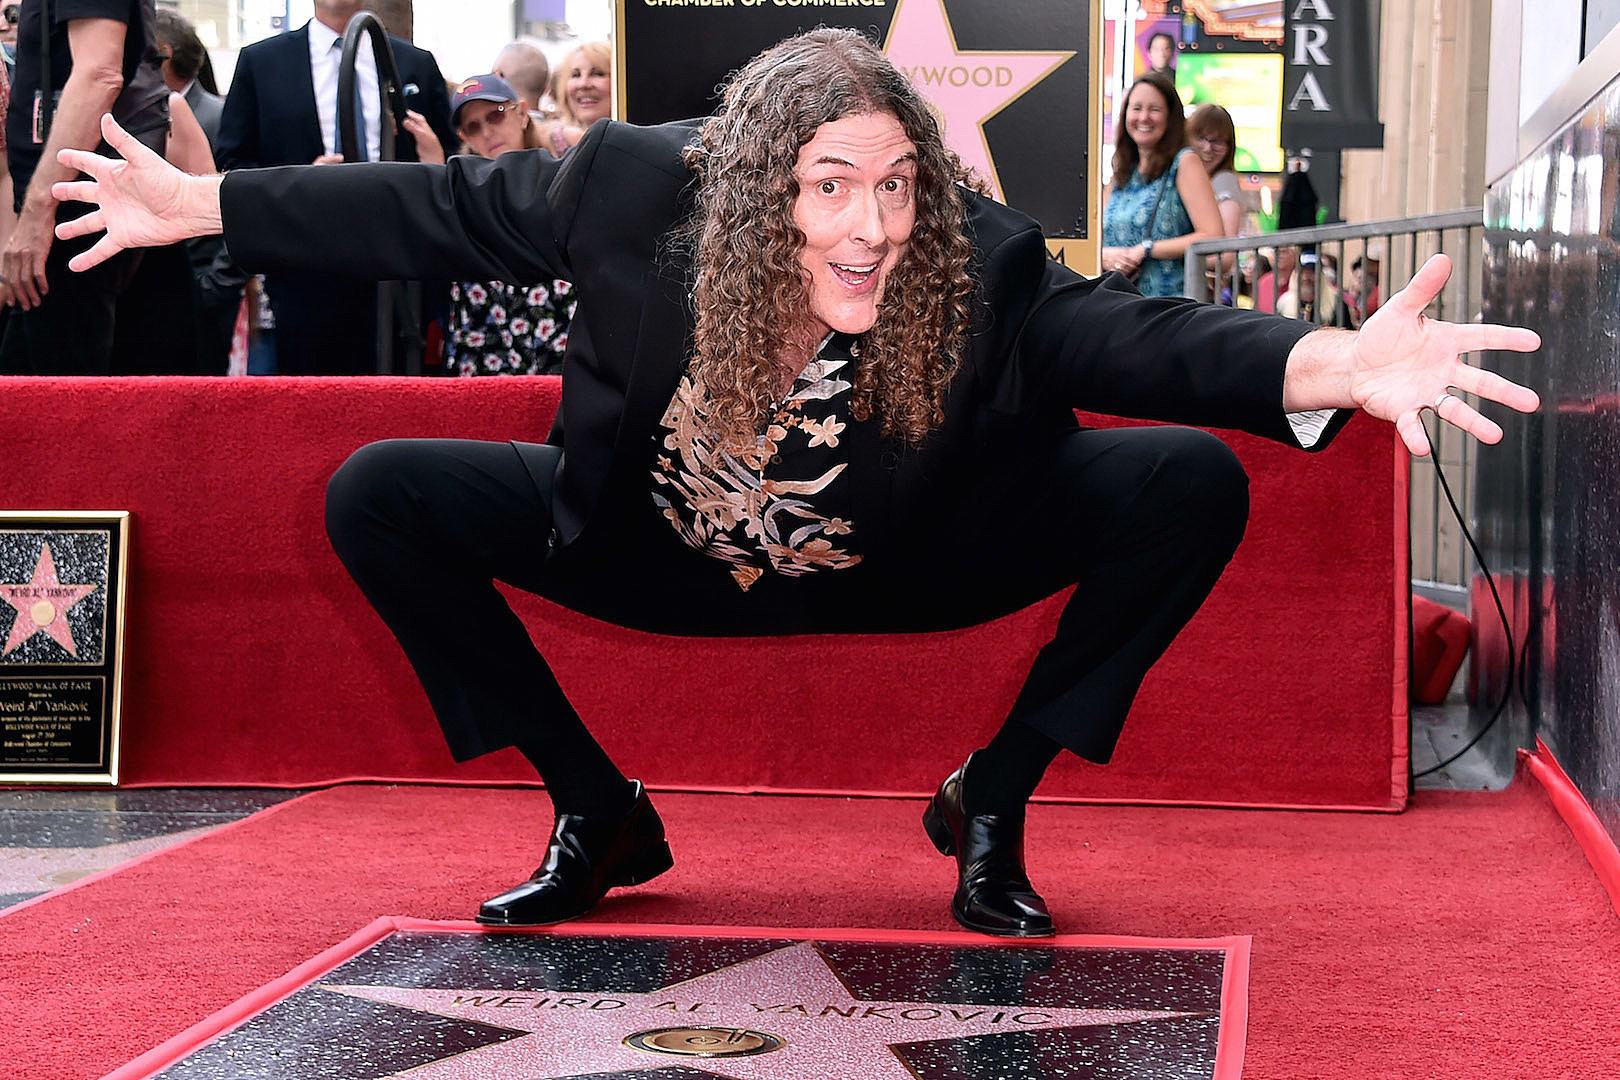 'Weird Al' Yankovic Announces Massive 2019 Tour With Symphony Orchestra